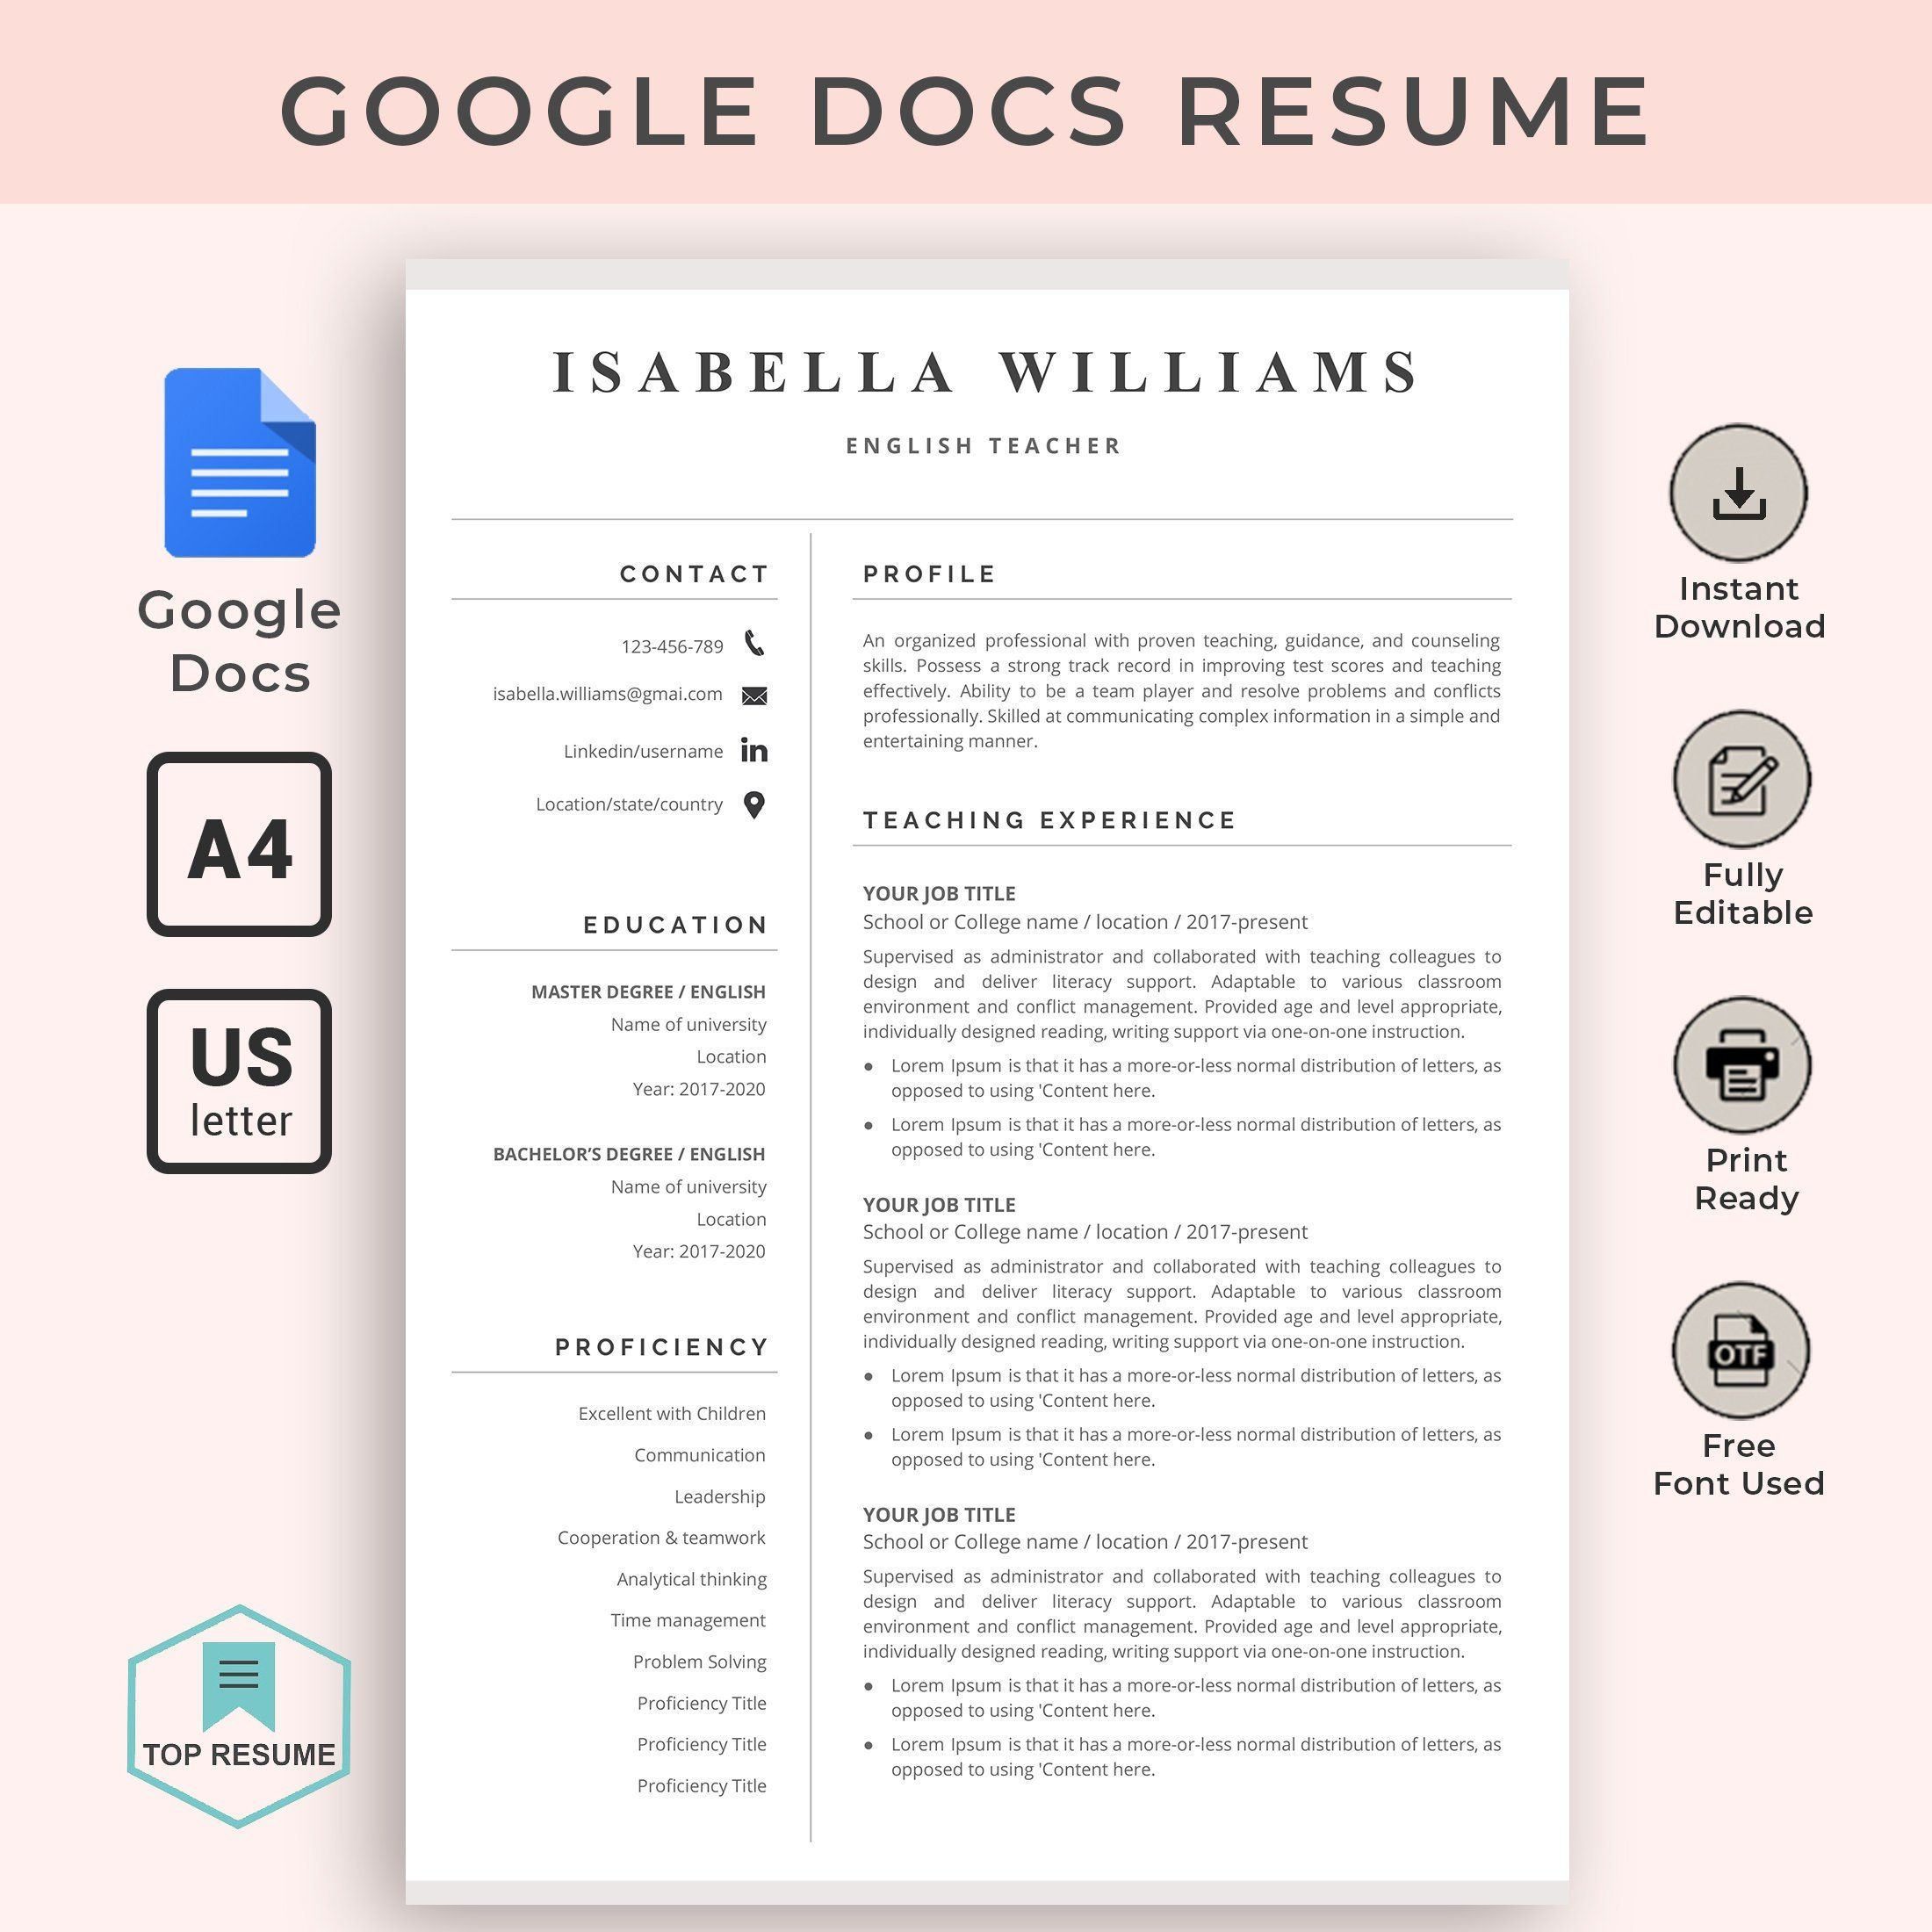 Google Docs Resume Google Docs Resume Template Teacher Resume Template Instant Download Cv Resume Cv Template Word Teacher Resume Template Resume Template